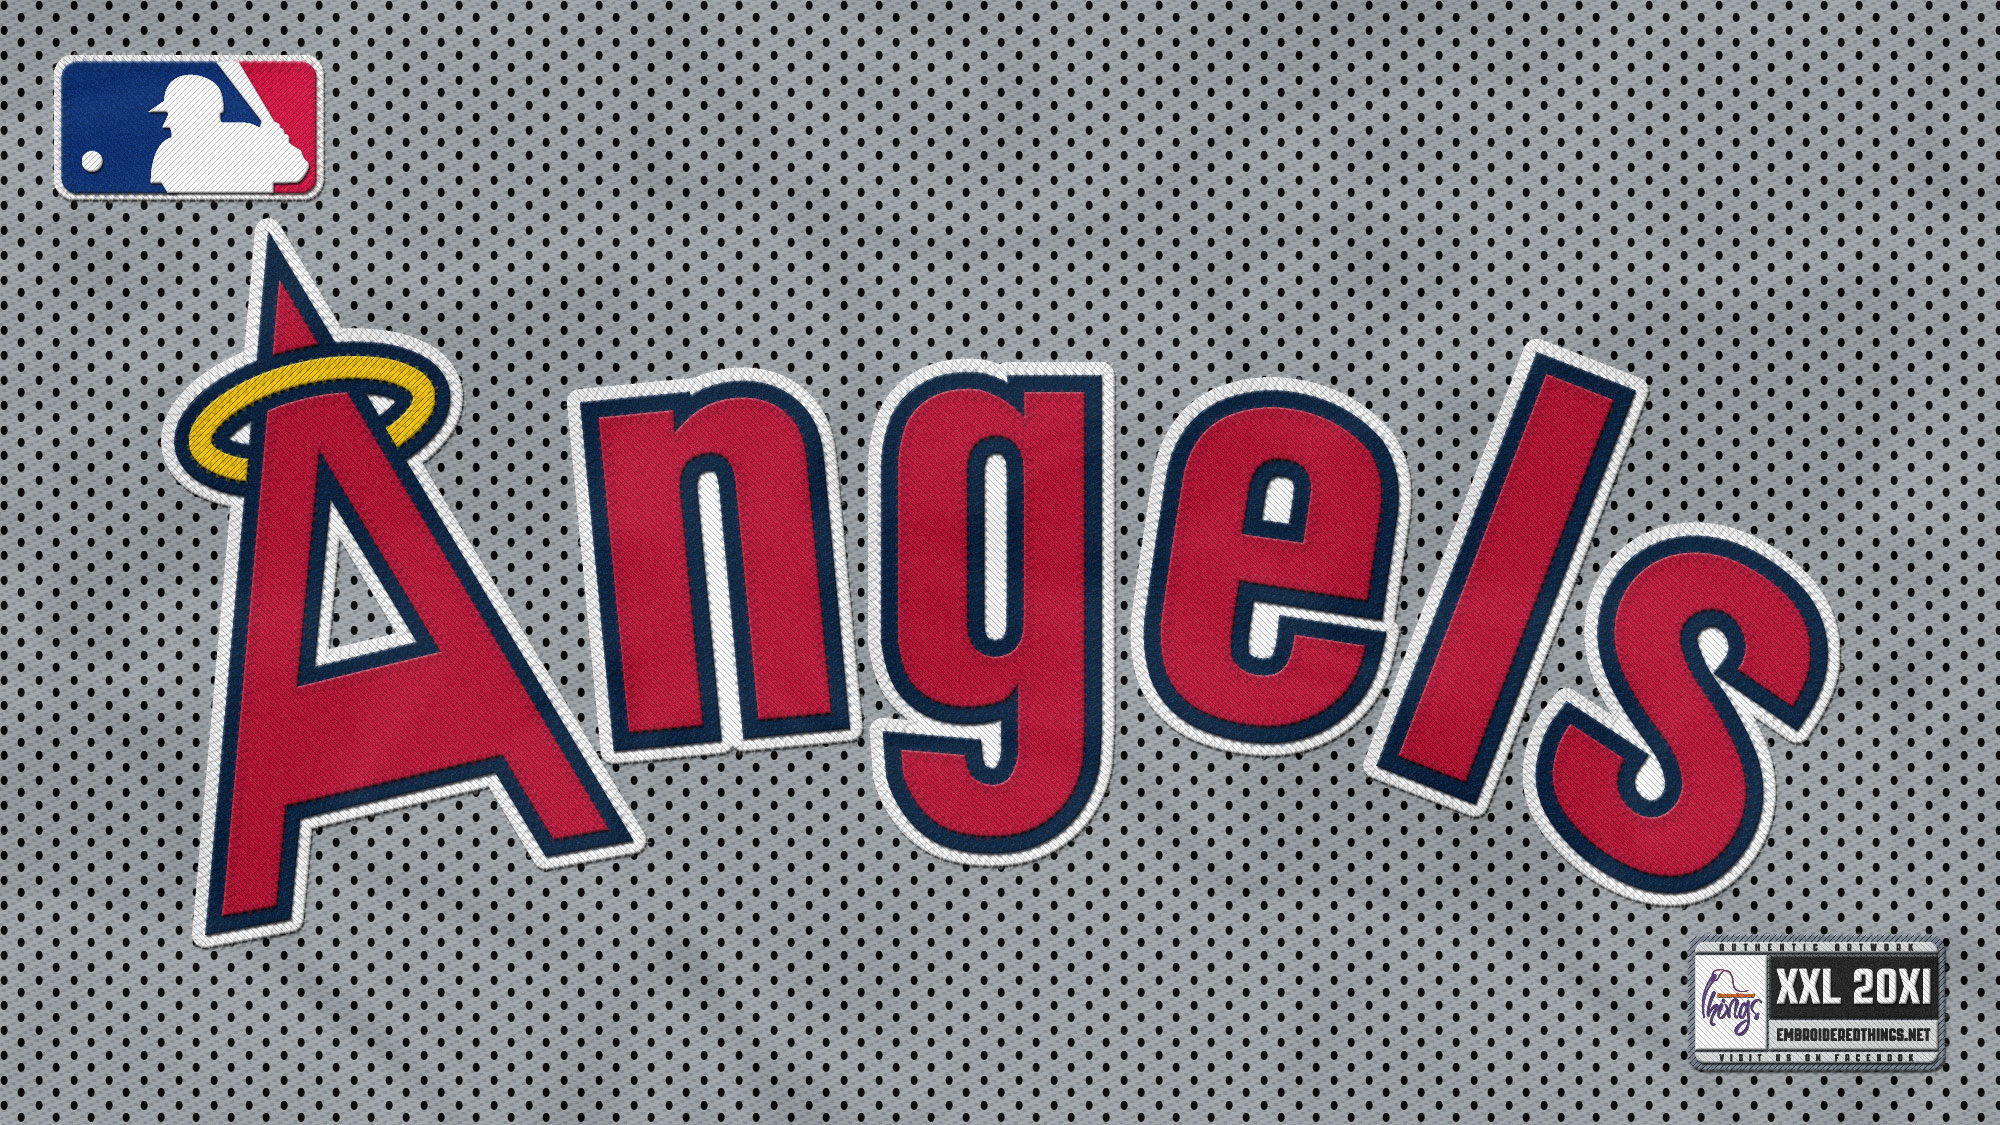 Angels Baseball Hd Wallpaper Wallpapersafari